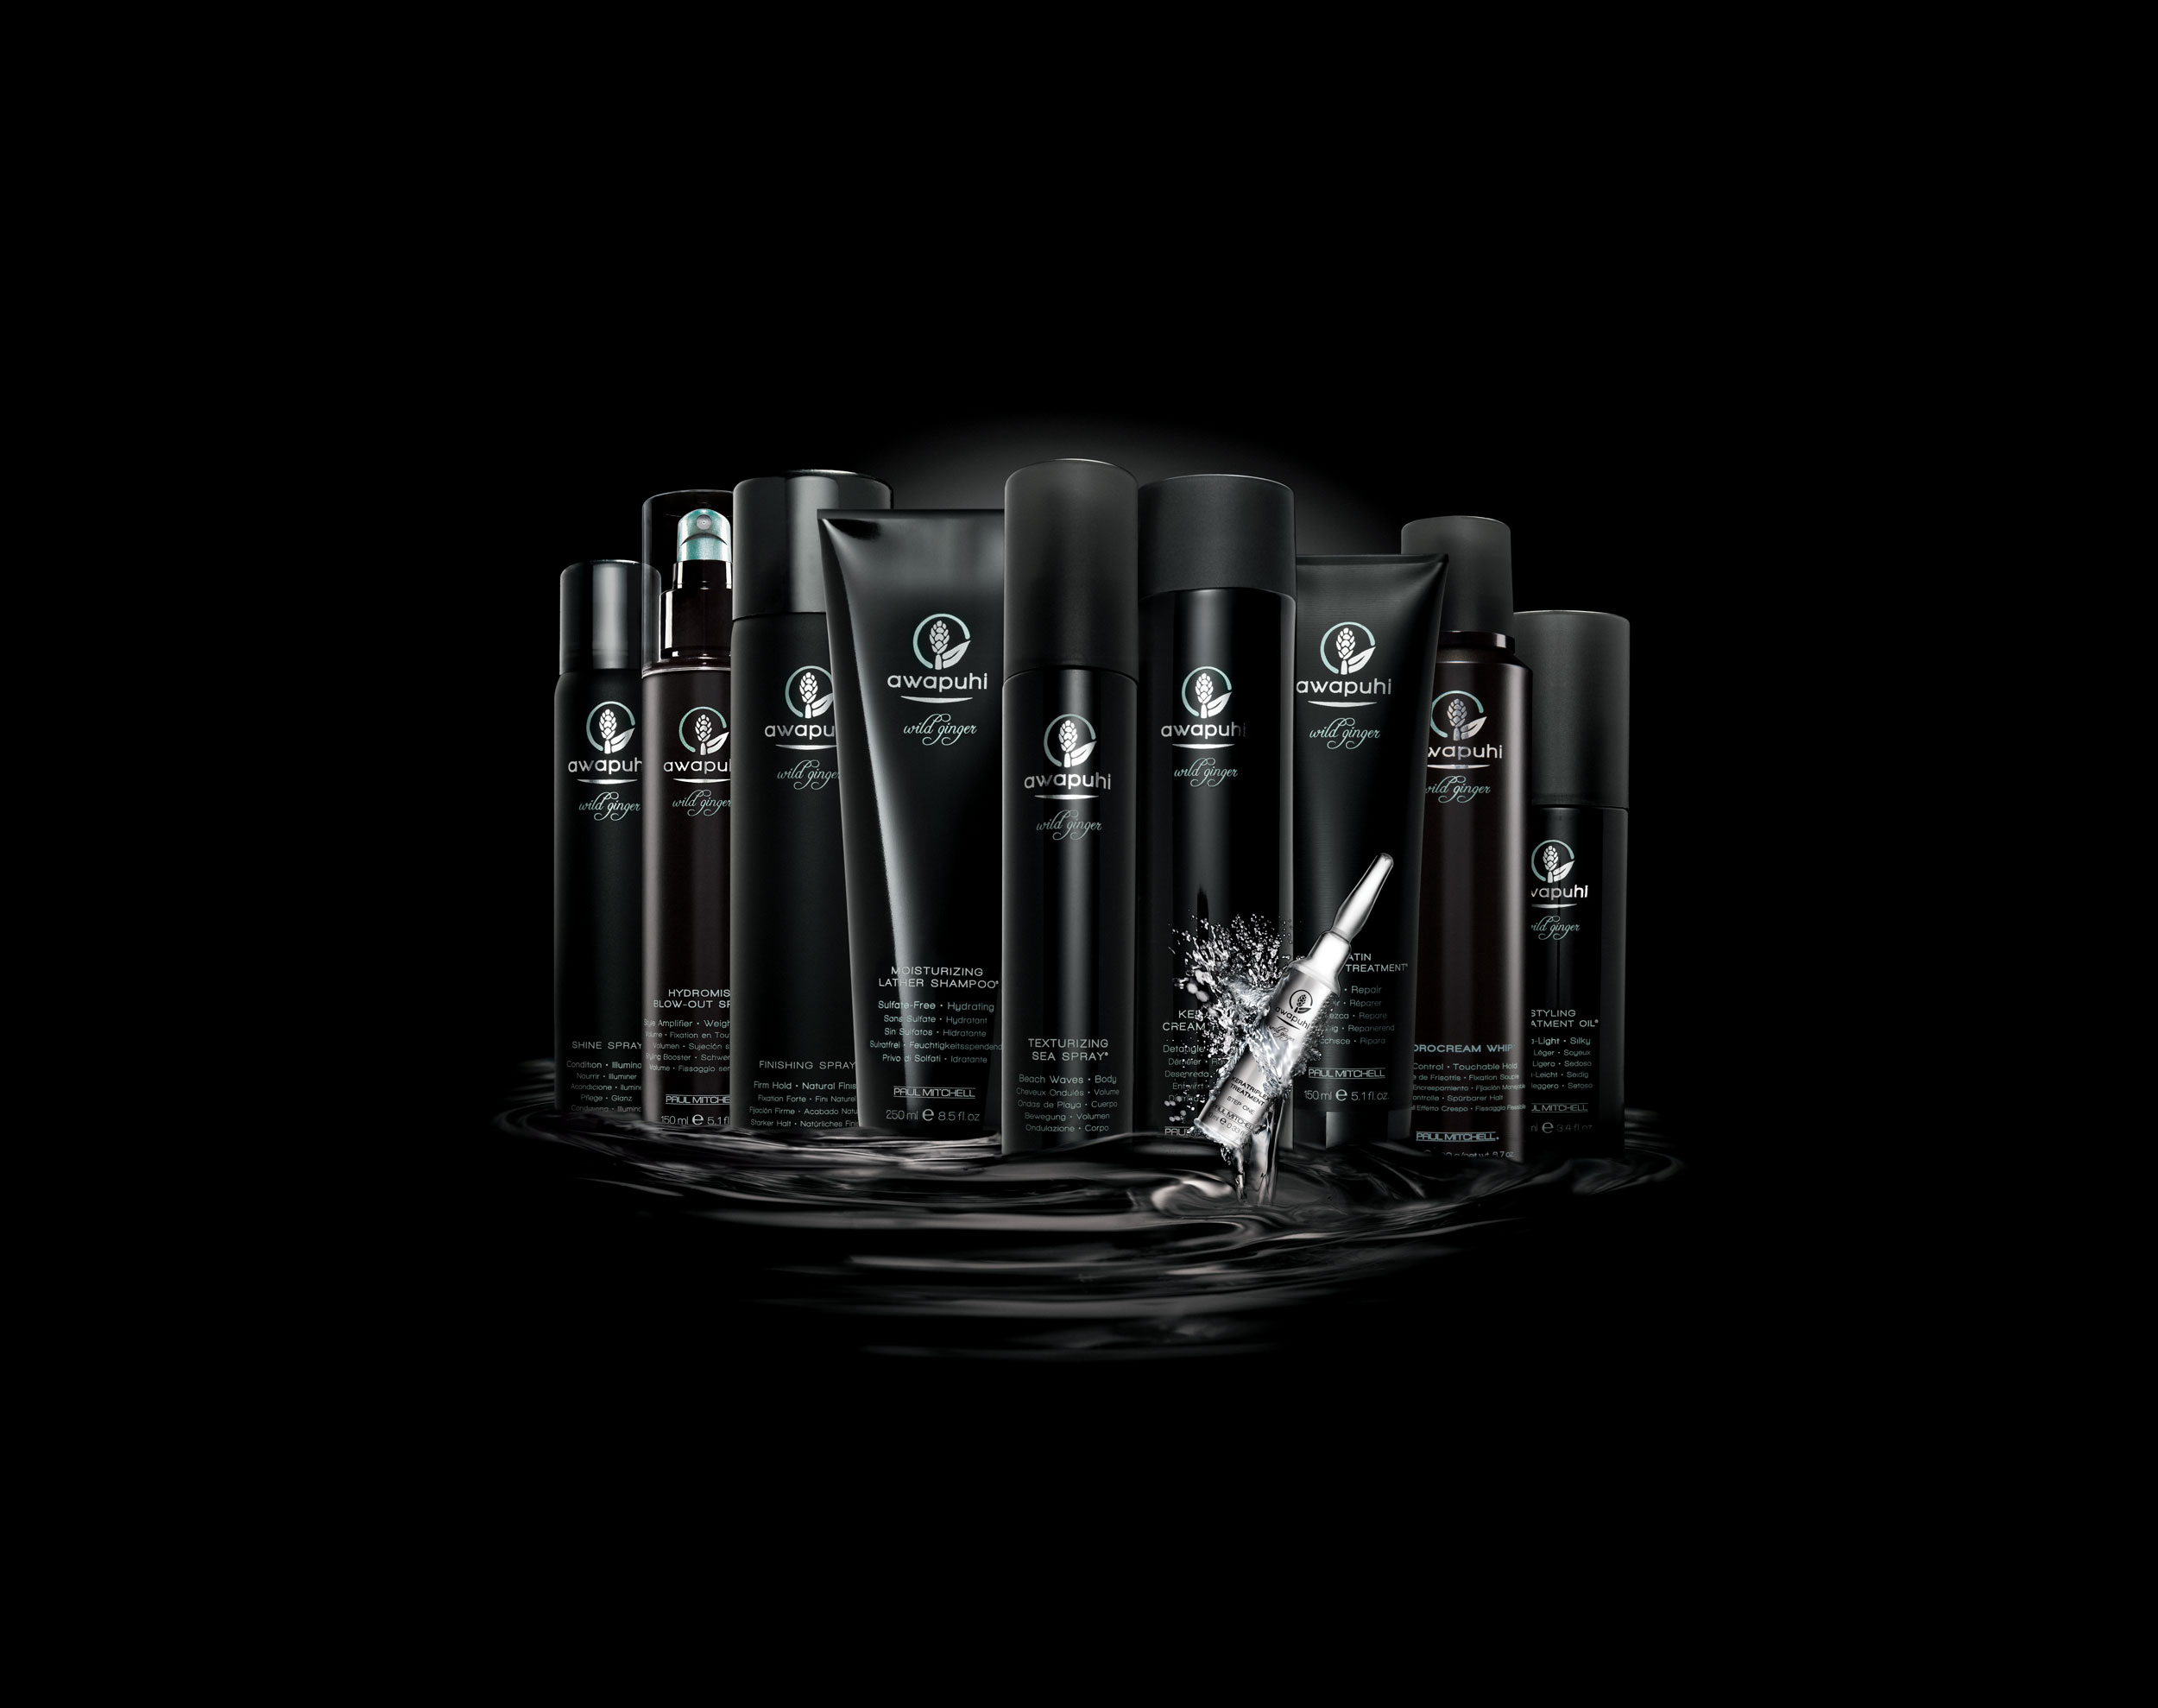 Whether your hair is damaged from over-processing, naturally thirsty and dry, or somewhere in between, Awapuhi Wild Ginger® offers a targeted professional treatment with dramatic, instant results.